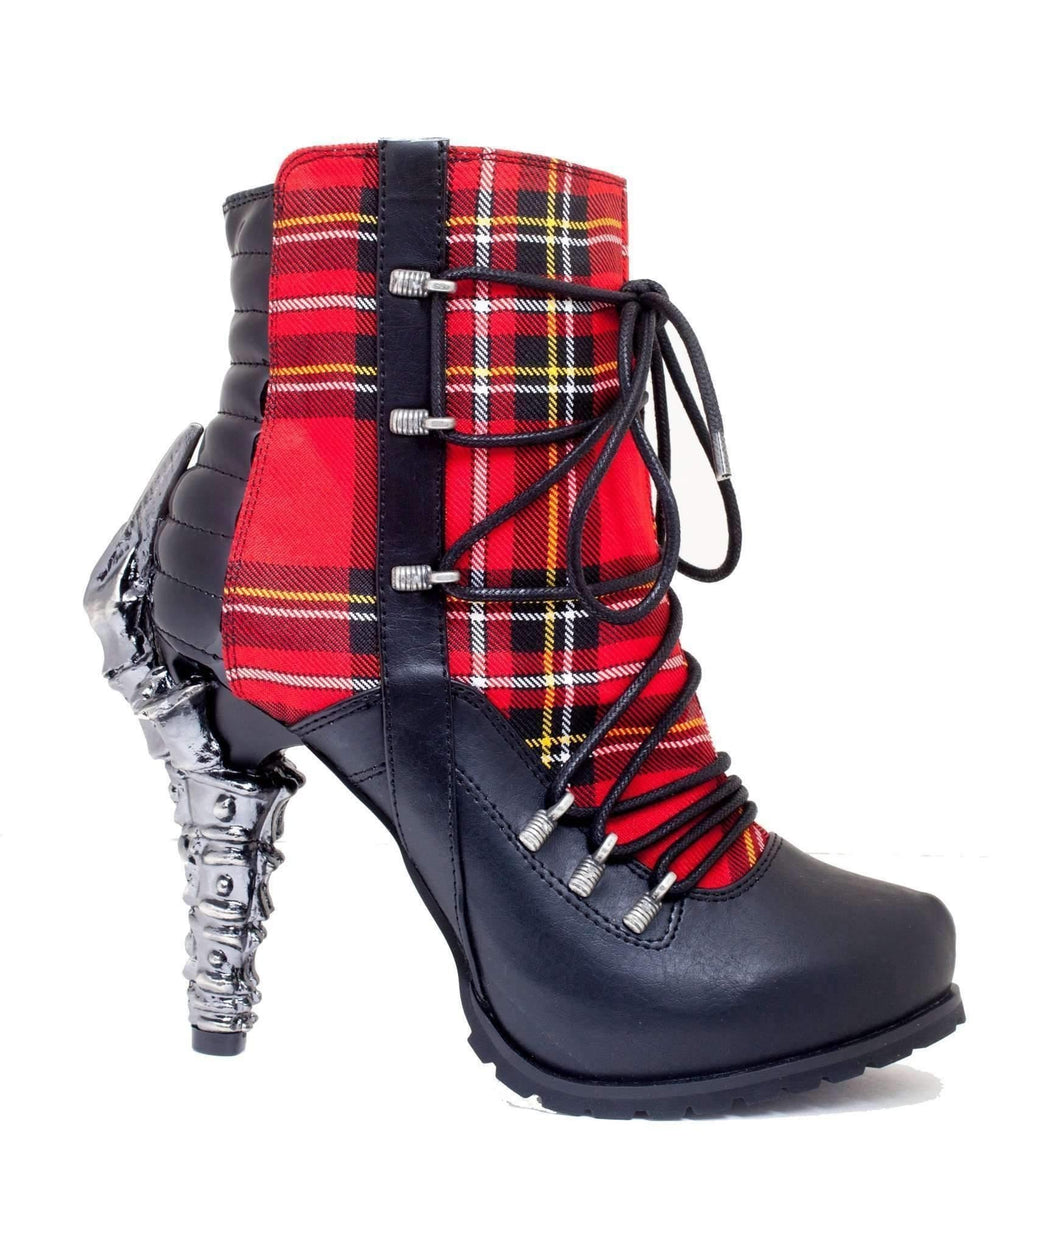 Hades Alternative Shoes Shade Red Boots-Boots-Hades Alternative Shoes-6-Red-Unspoken Fashion